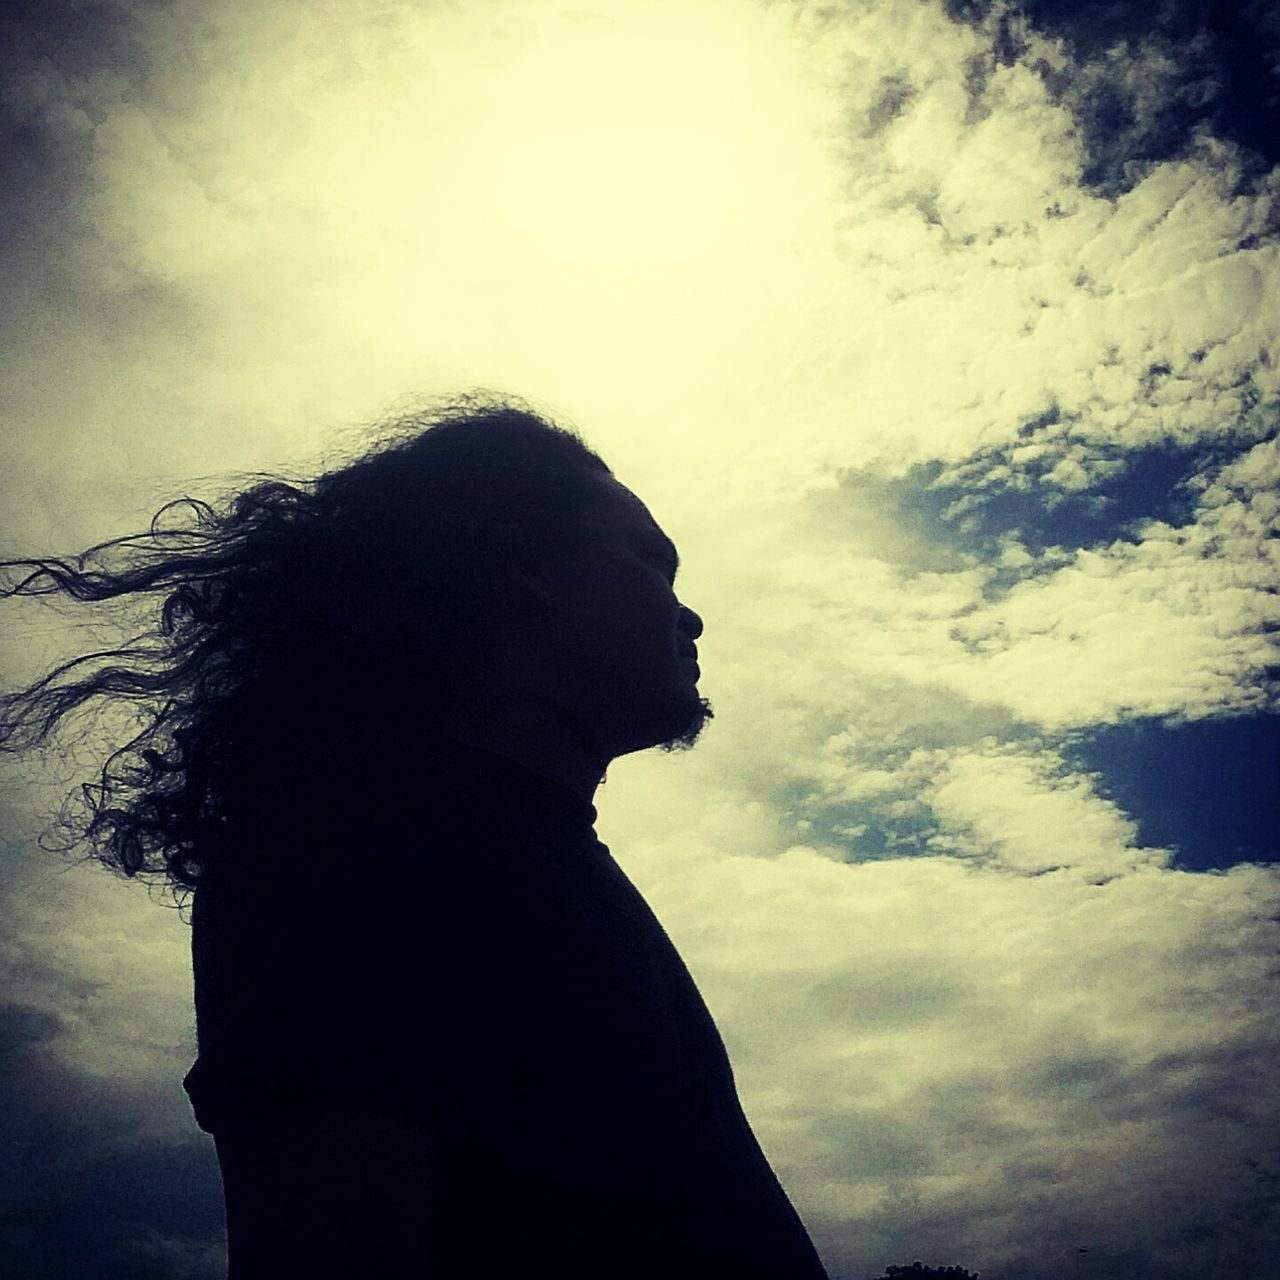 silhouette, one person, sky, real people, side view, lifestyles, cloud - sky, standing, day, leisure activity, outdoors, nature, young adult, people